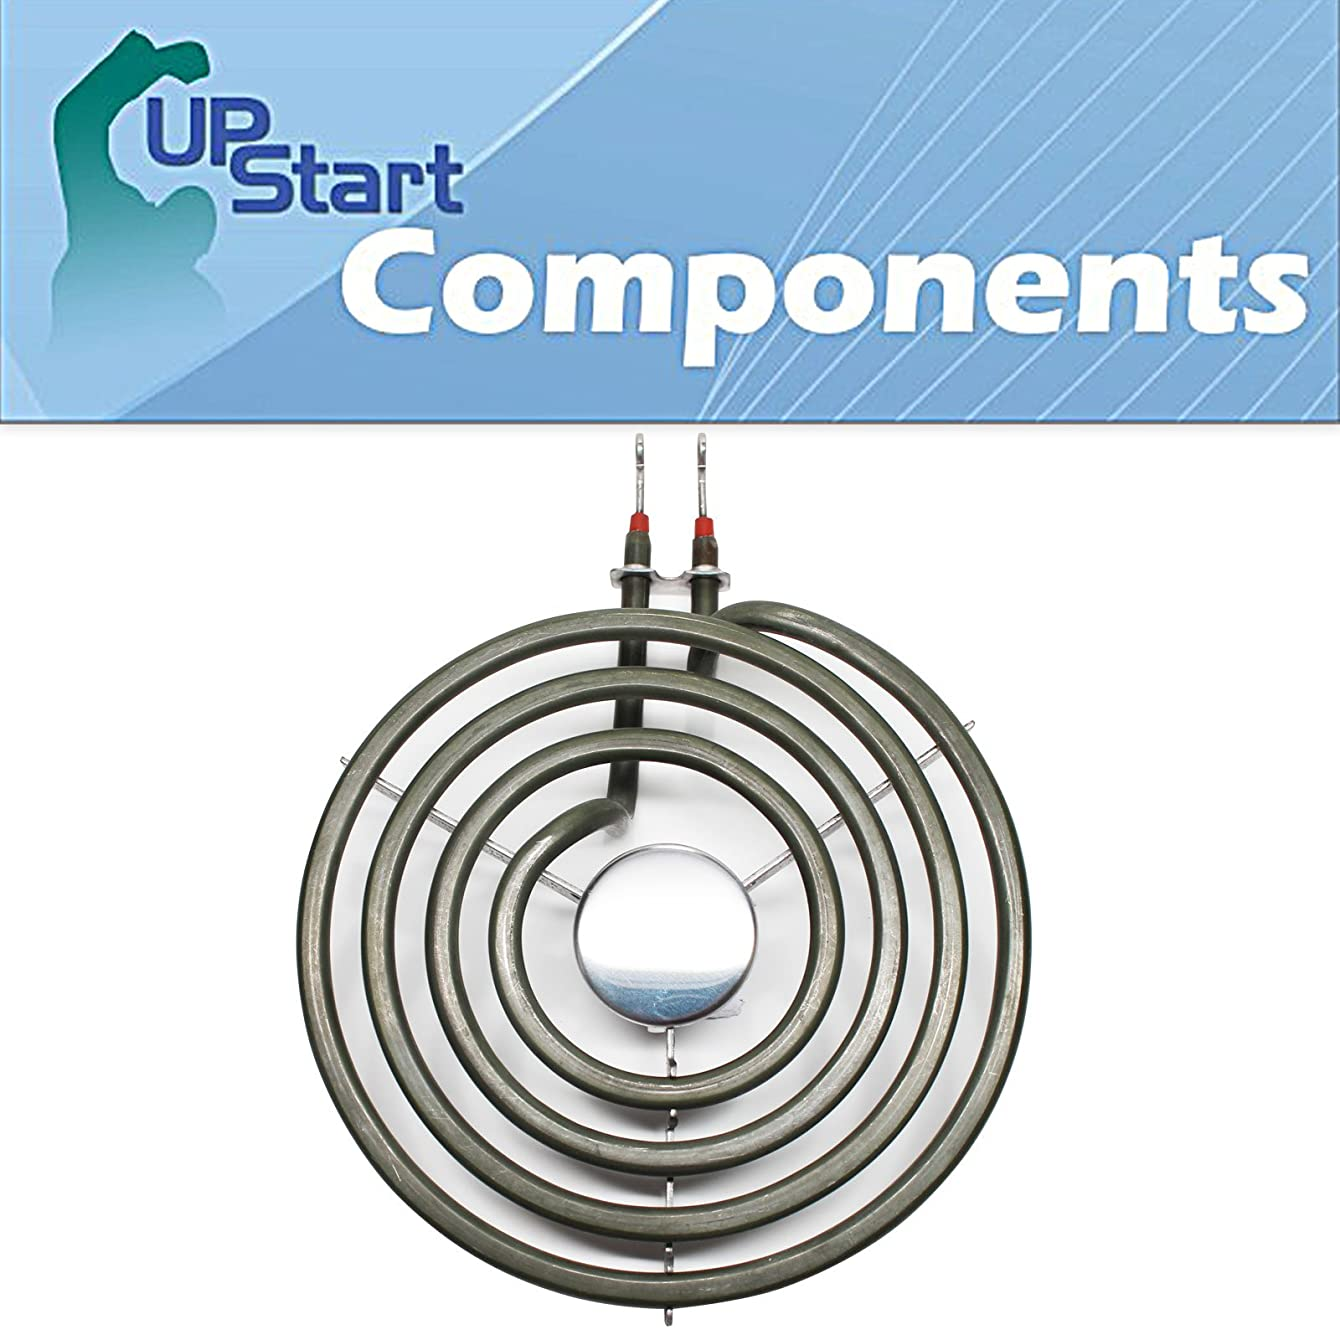 Replacement Maytag LDG412 6 inch 4 Turns Surface Burner Element - Compatible Maytag 660532 Heating Element for Range, Stove & Cooktop